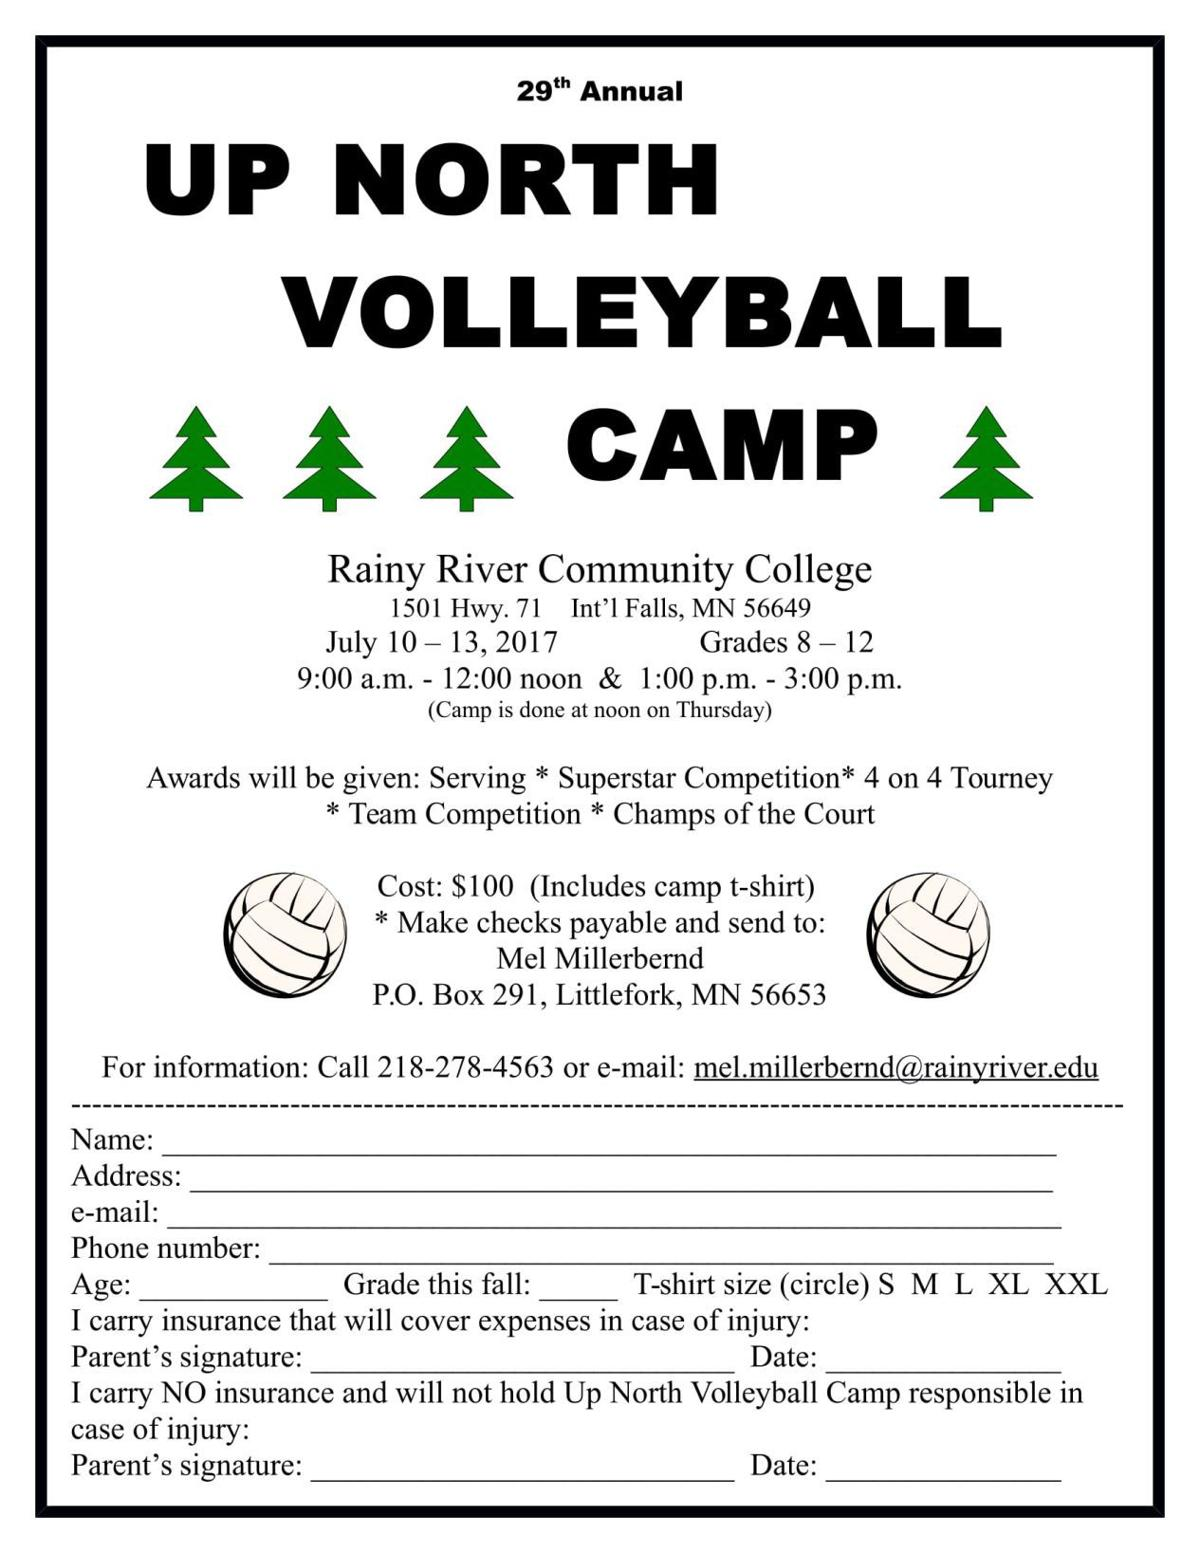 Volleyball camps set at RRCC | Sports | ifallsjournal com